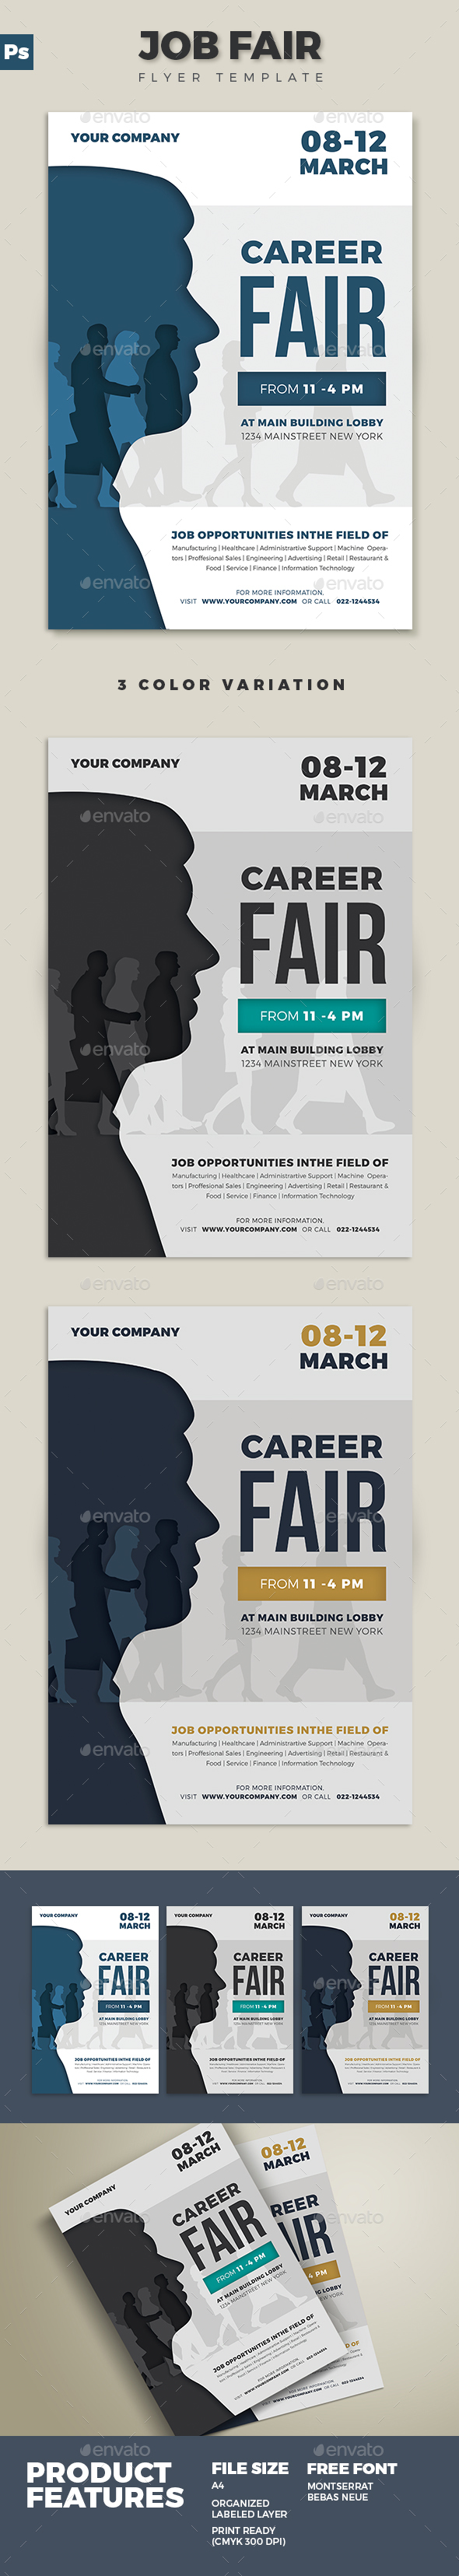 Job Fair Flyer 02 - Corporate Flyers